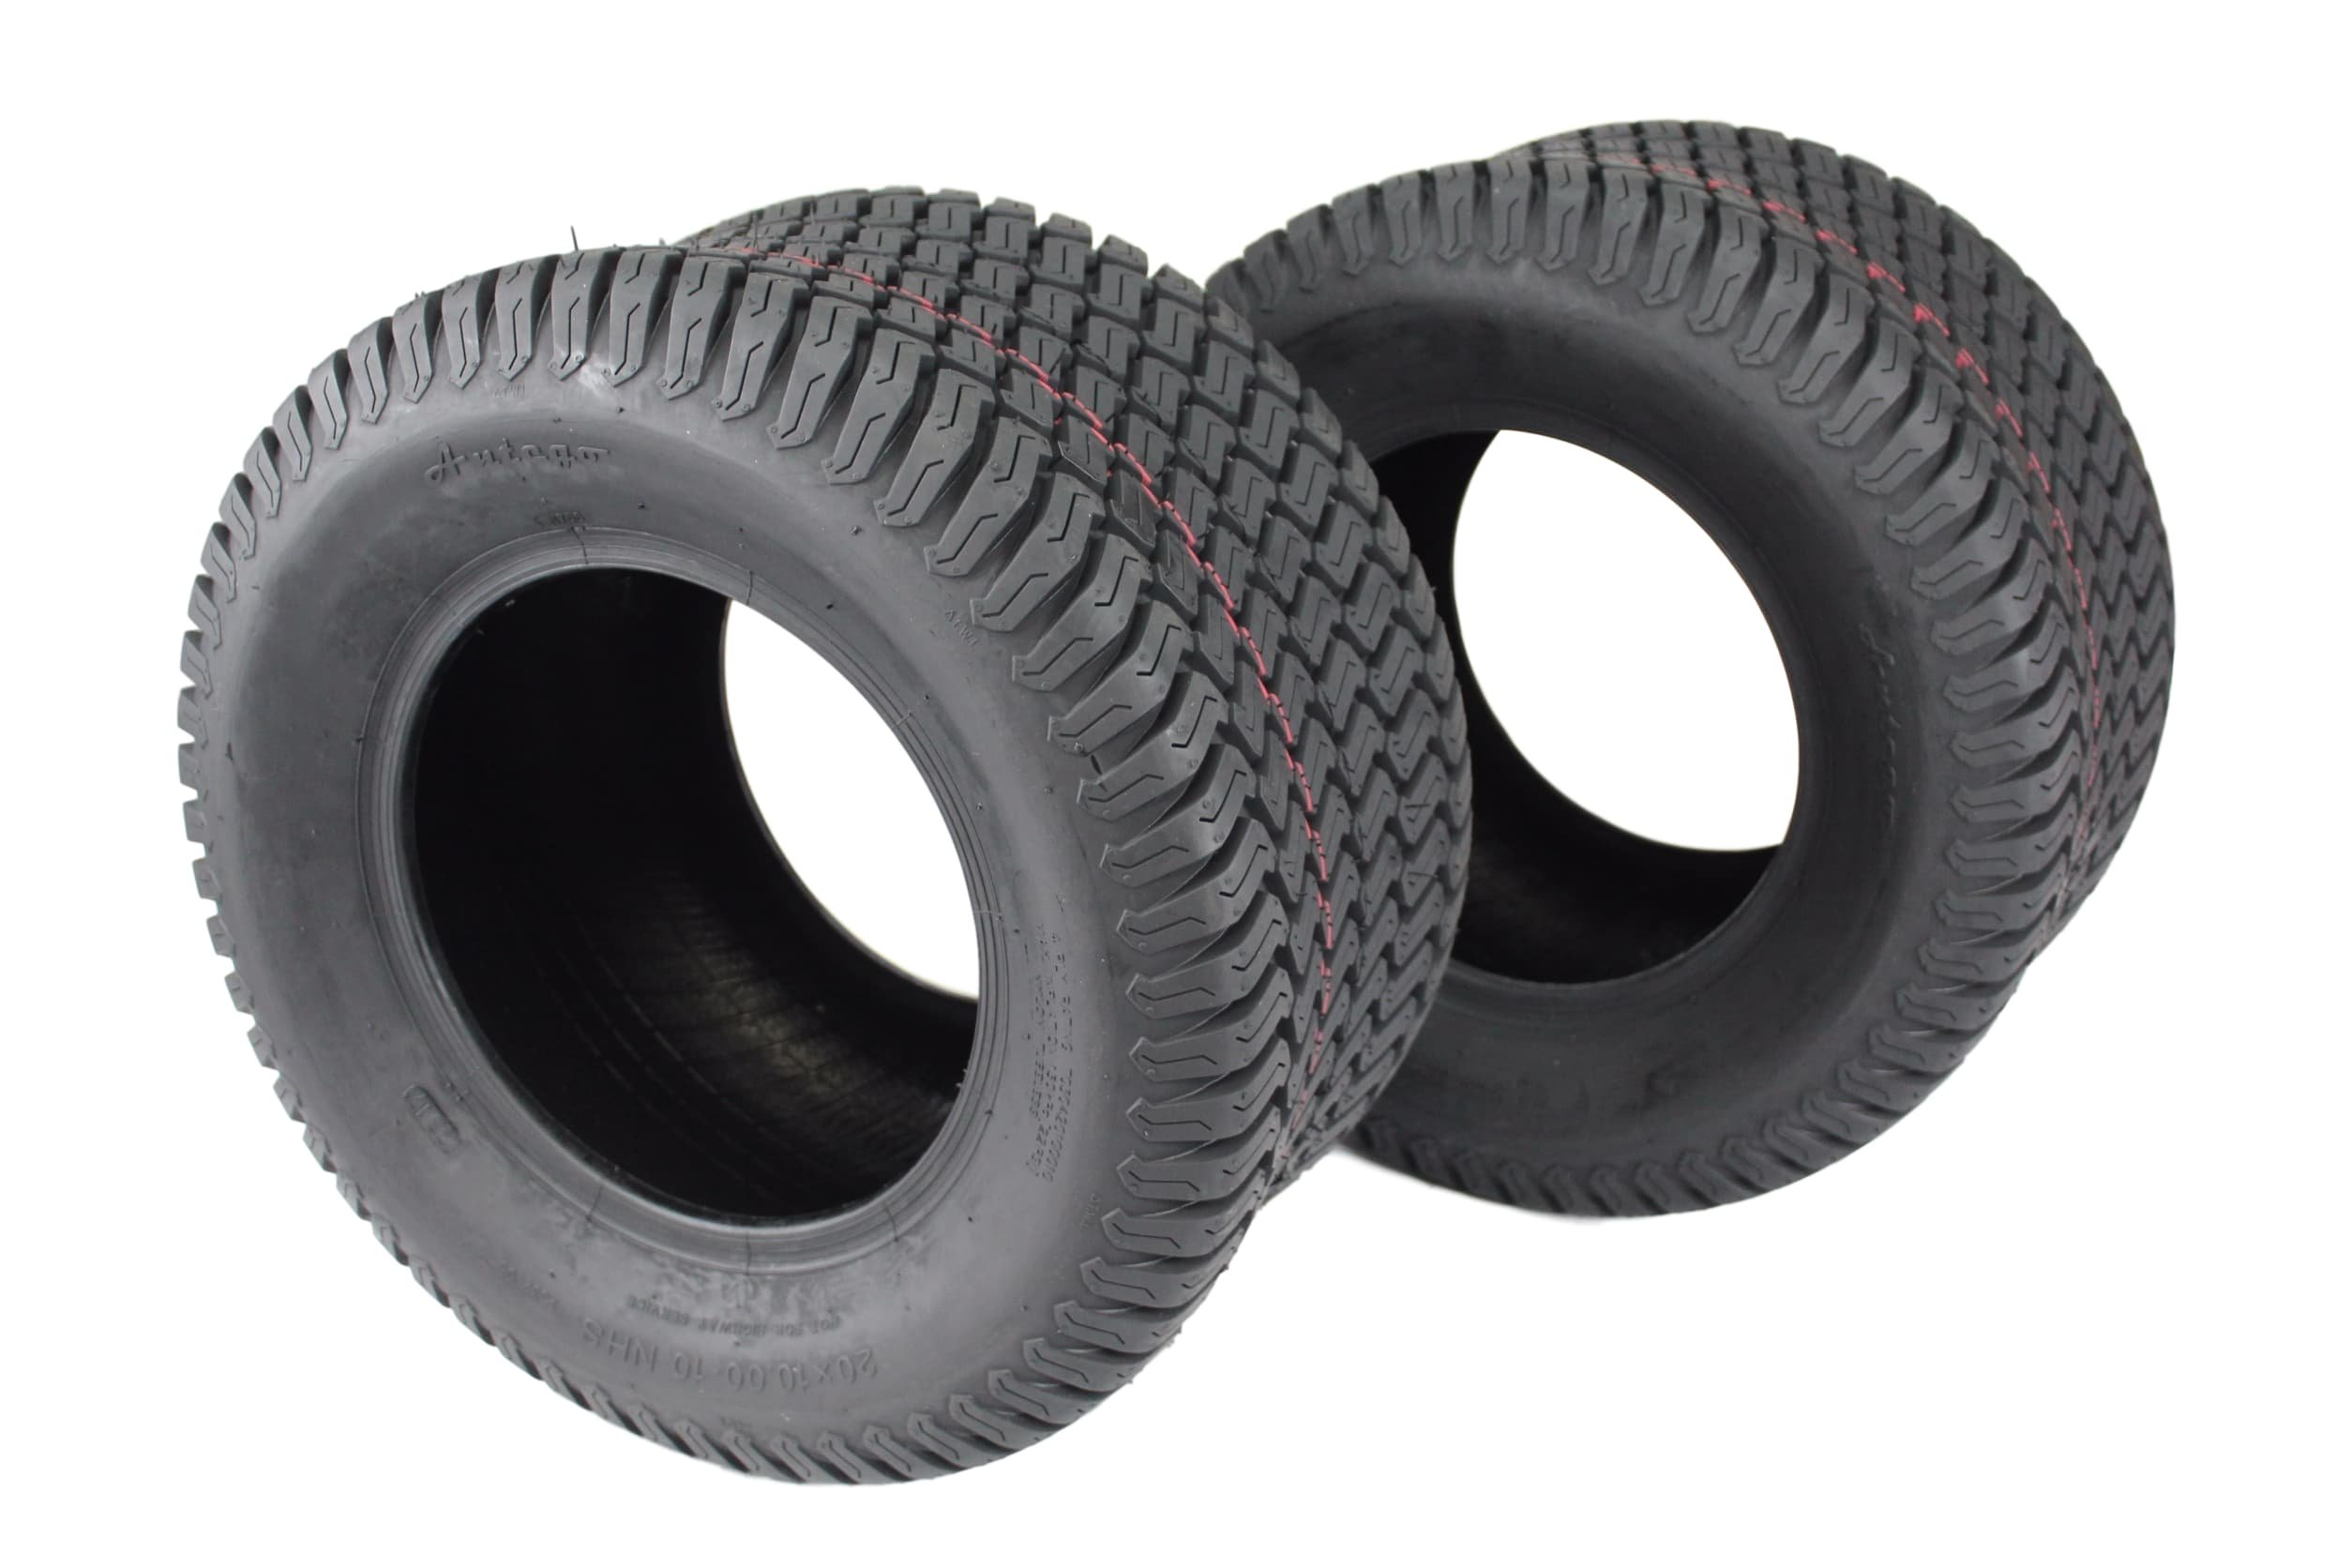 Antego Set of Two 20x10.00-10 4 Ply Turf Tires for Lawn & Garden Mower 20x10-10